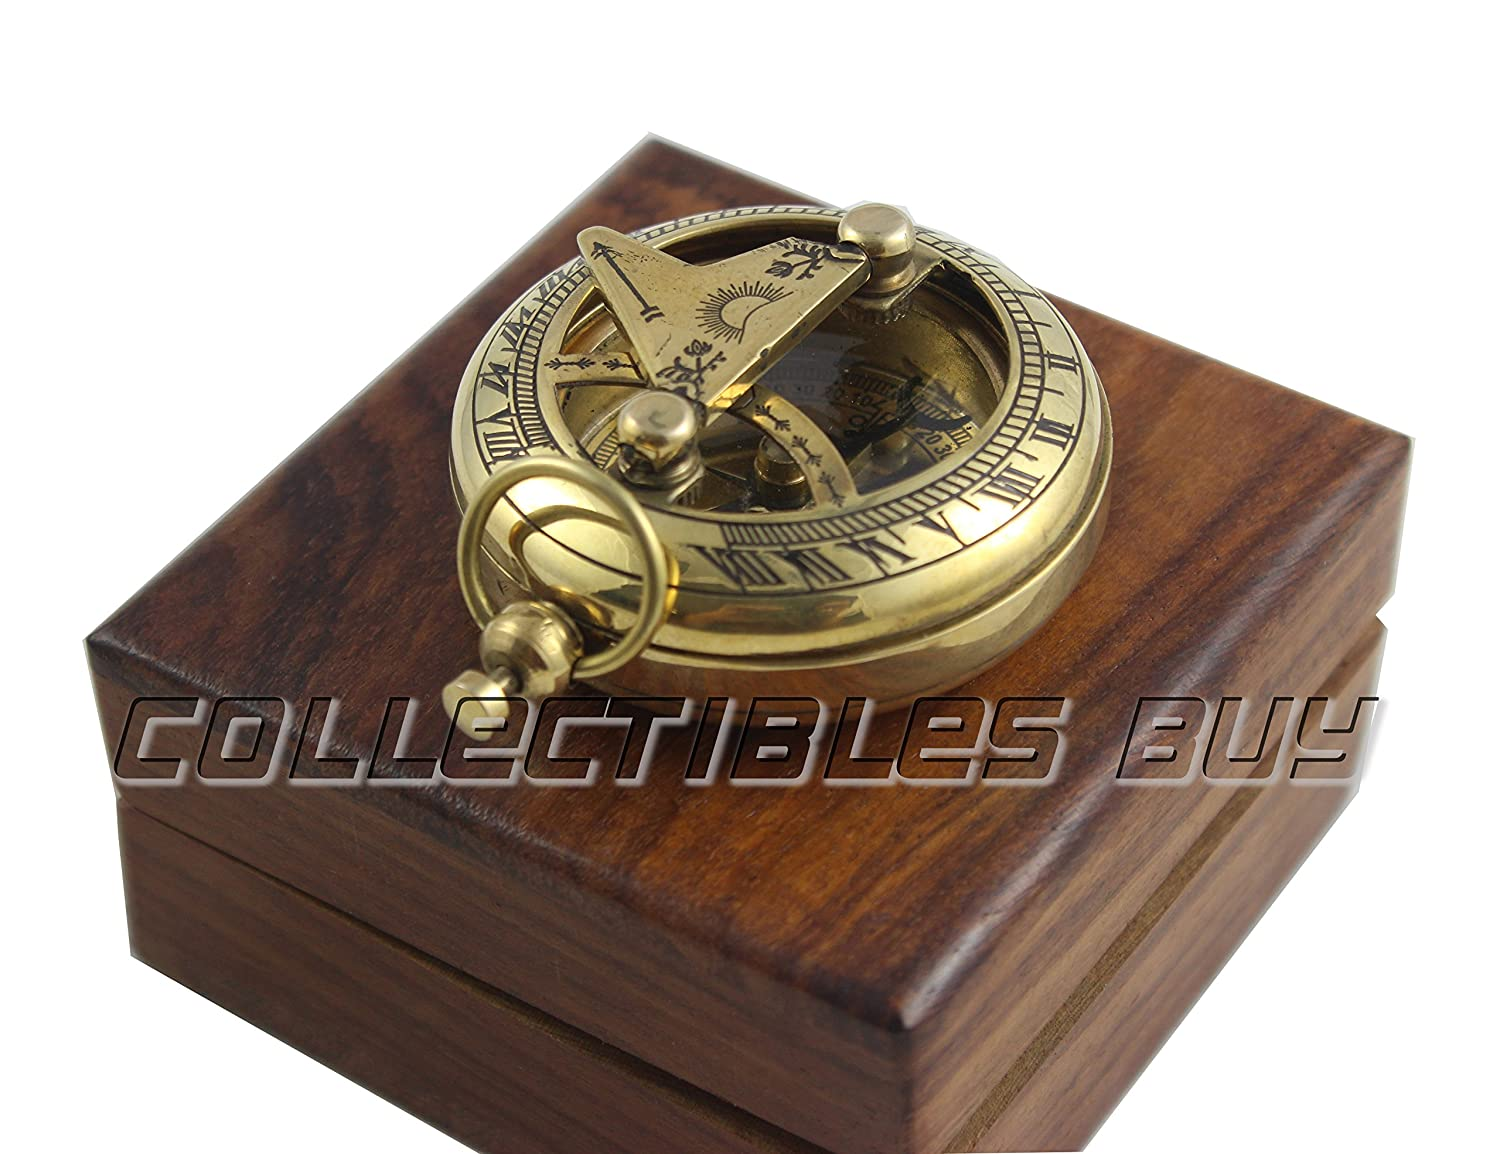 Marine Sundial Compass With Nautical Solid Wooden Box Vintage Brass Ship Navigate Device Nautical Gift Collection Collectibles Buy